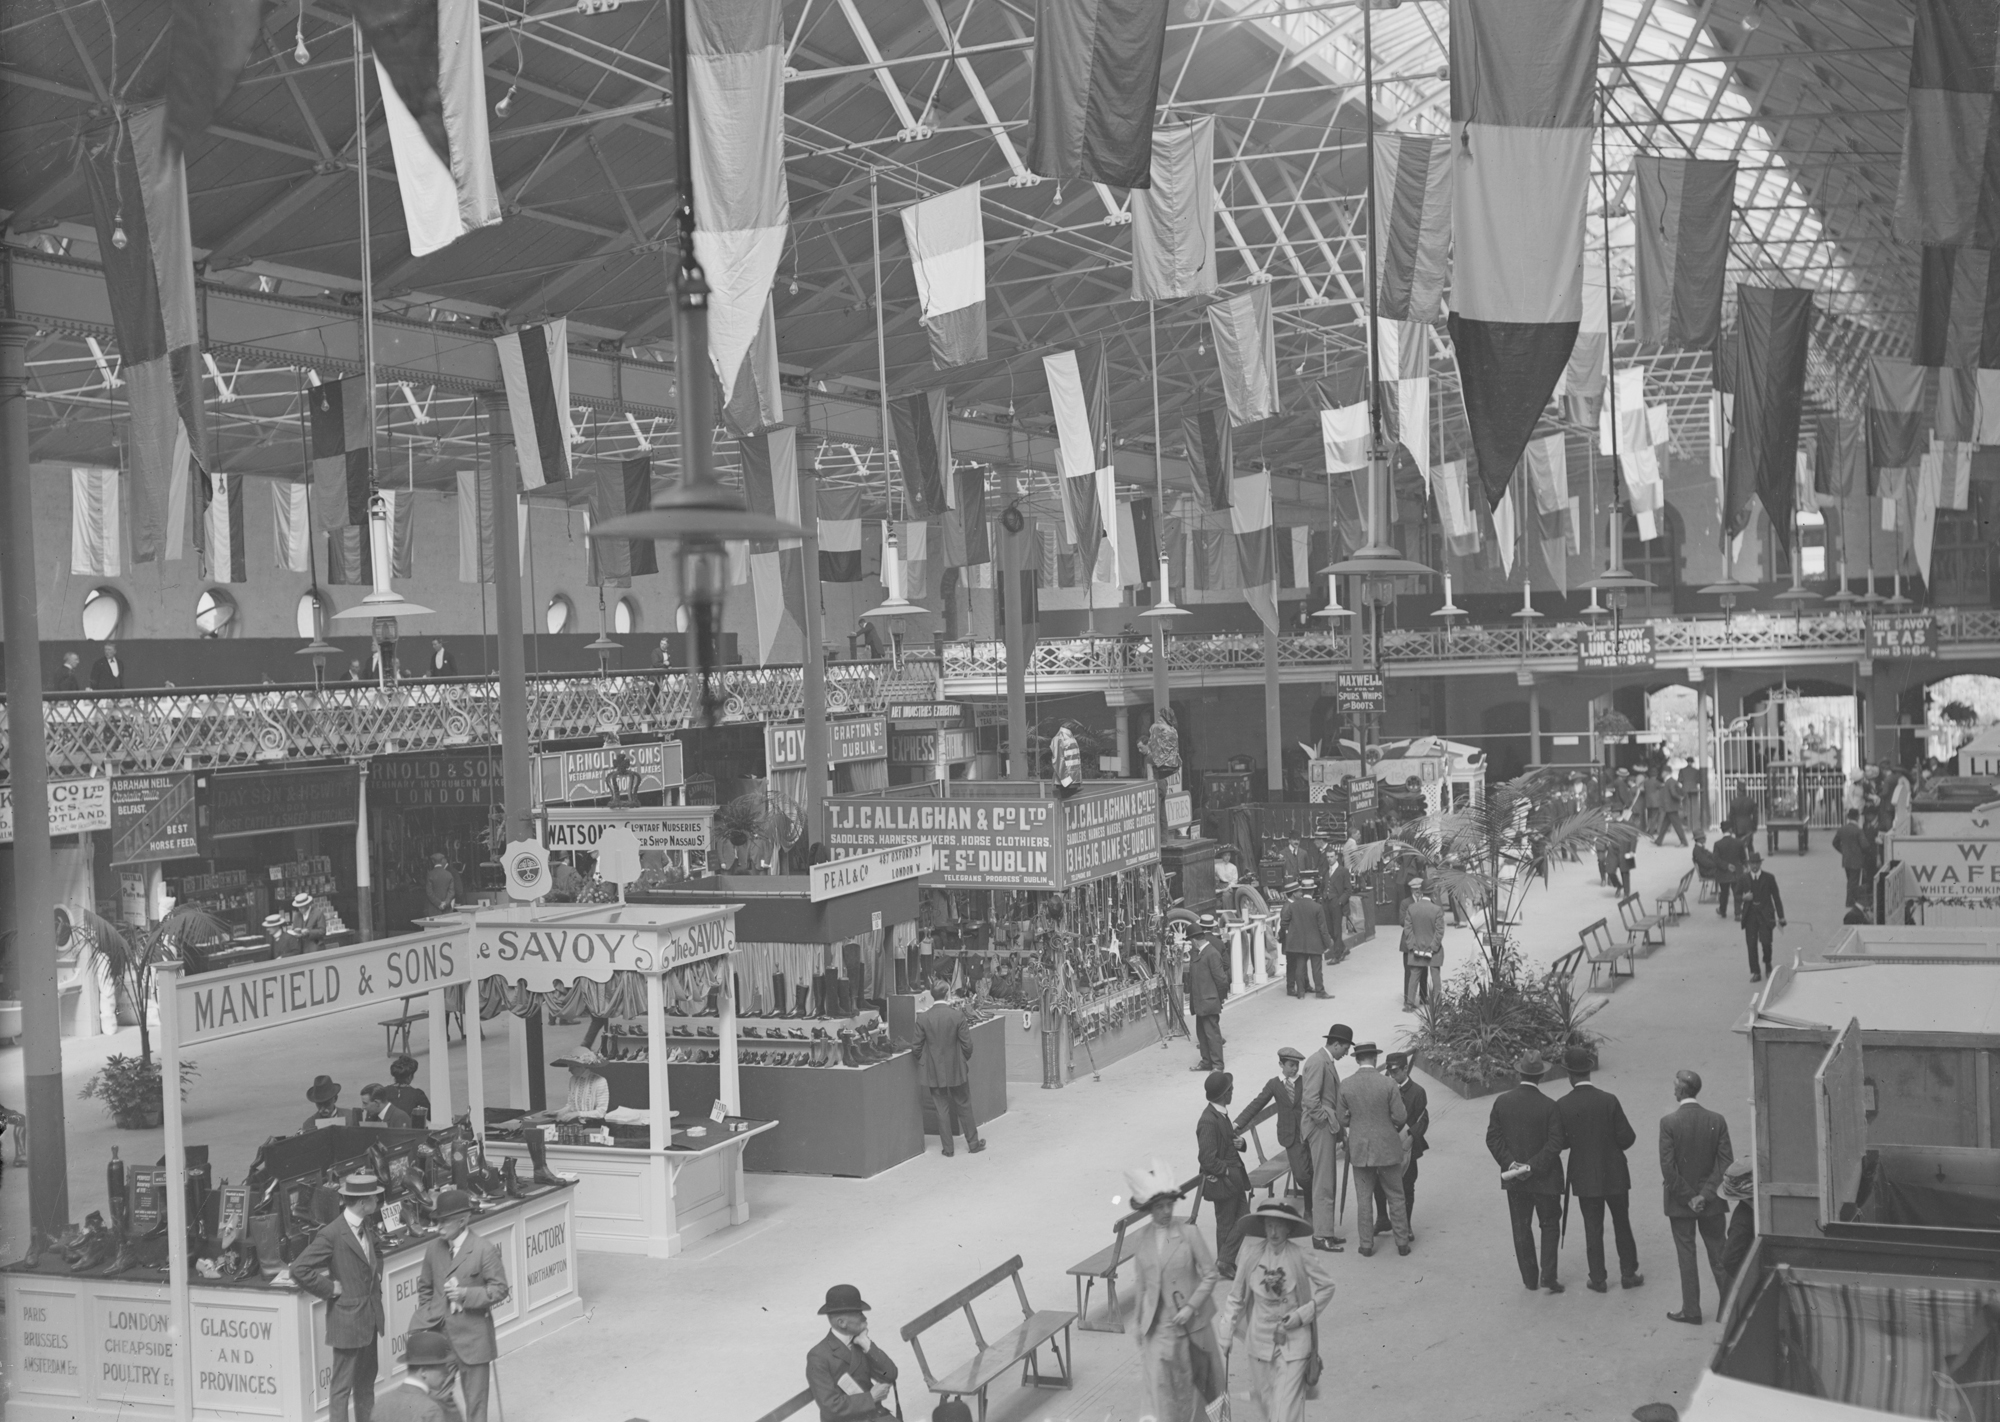 View of some of the Stalls at the Show, Ballsbridge, Co. Dublin